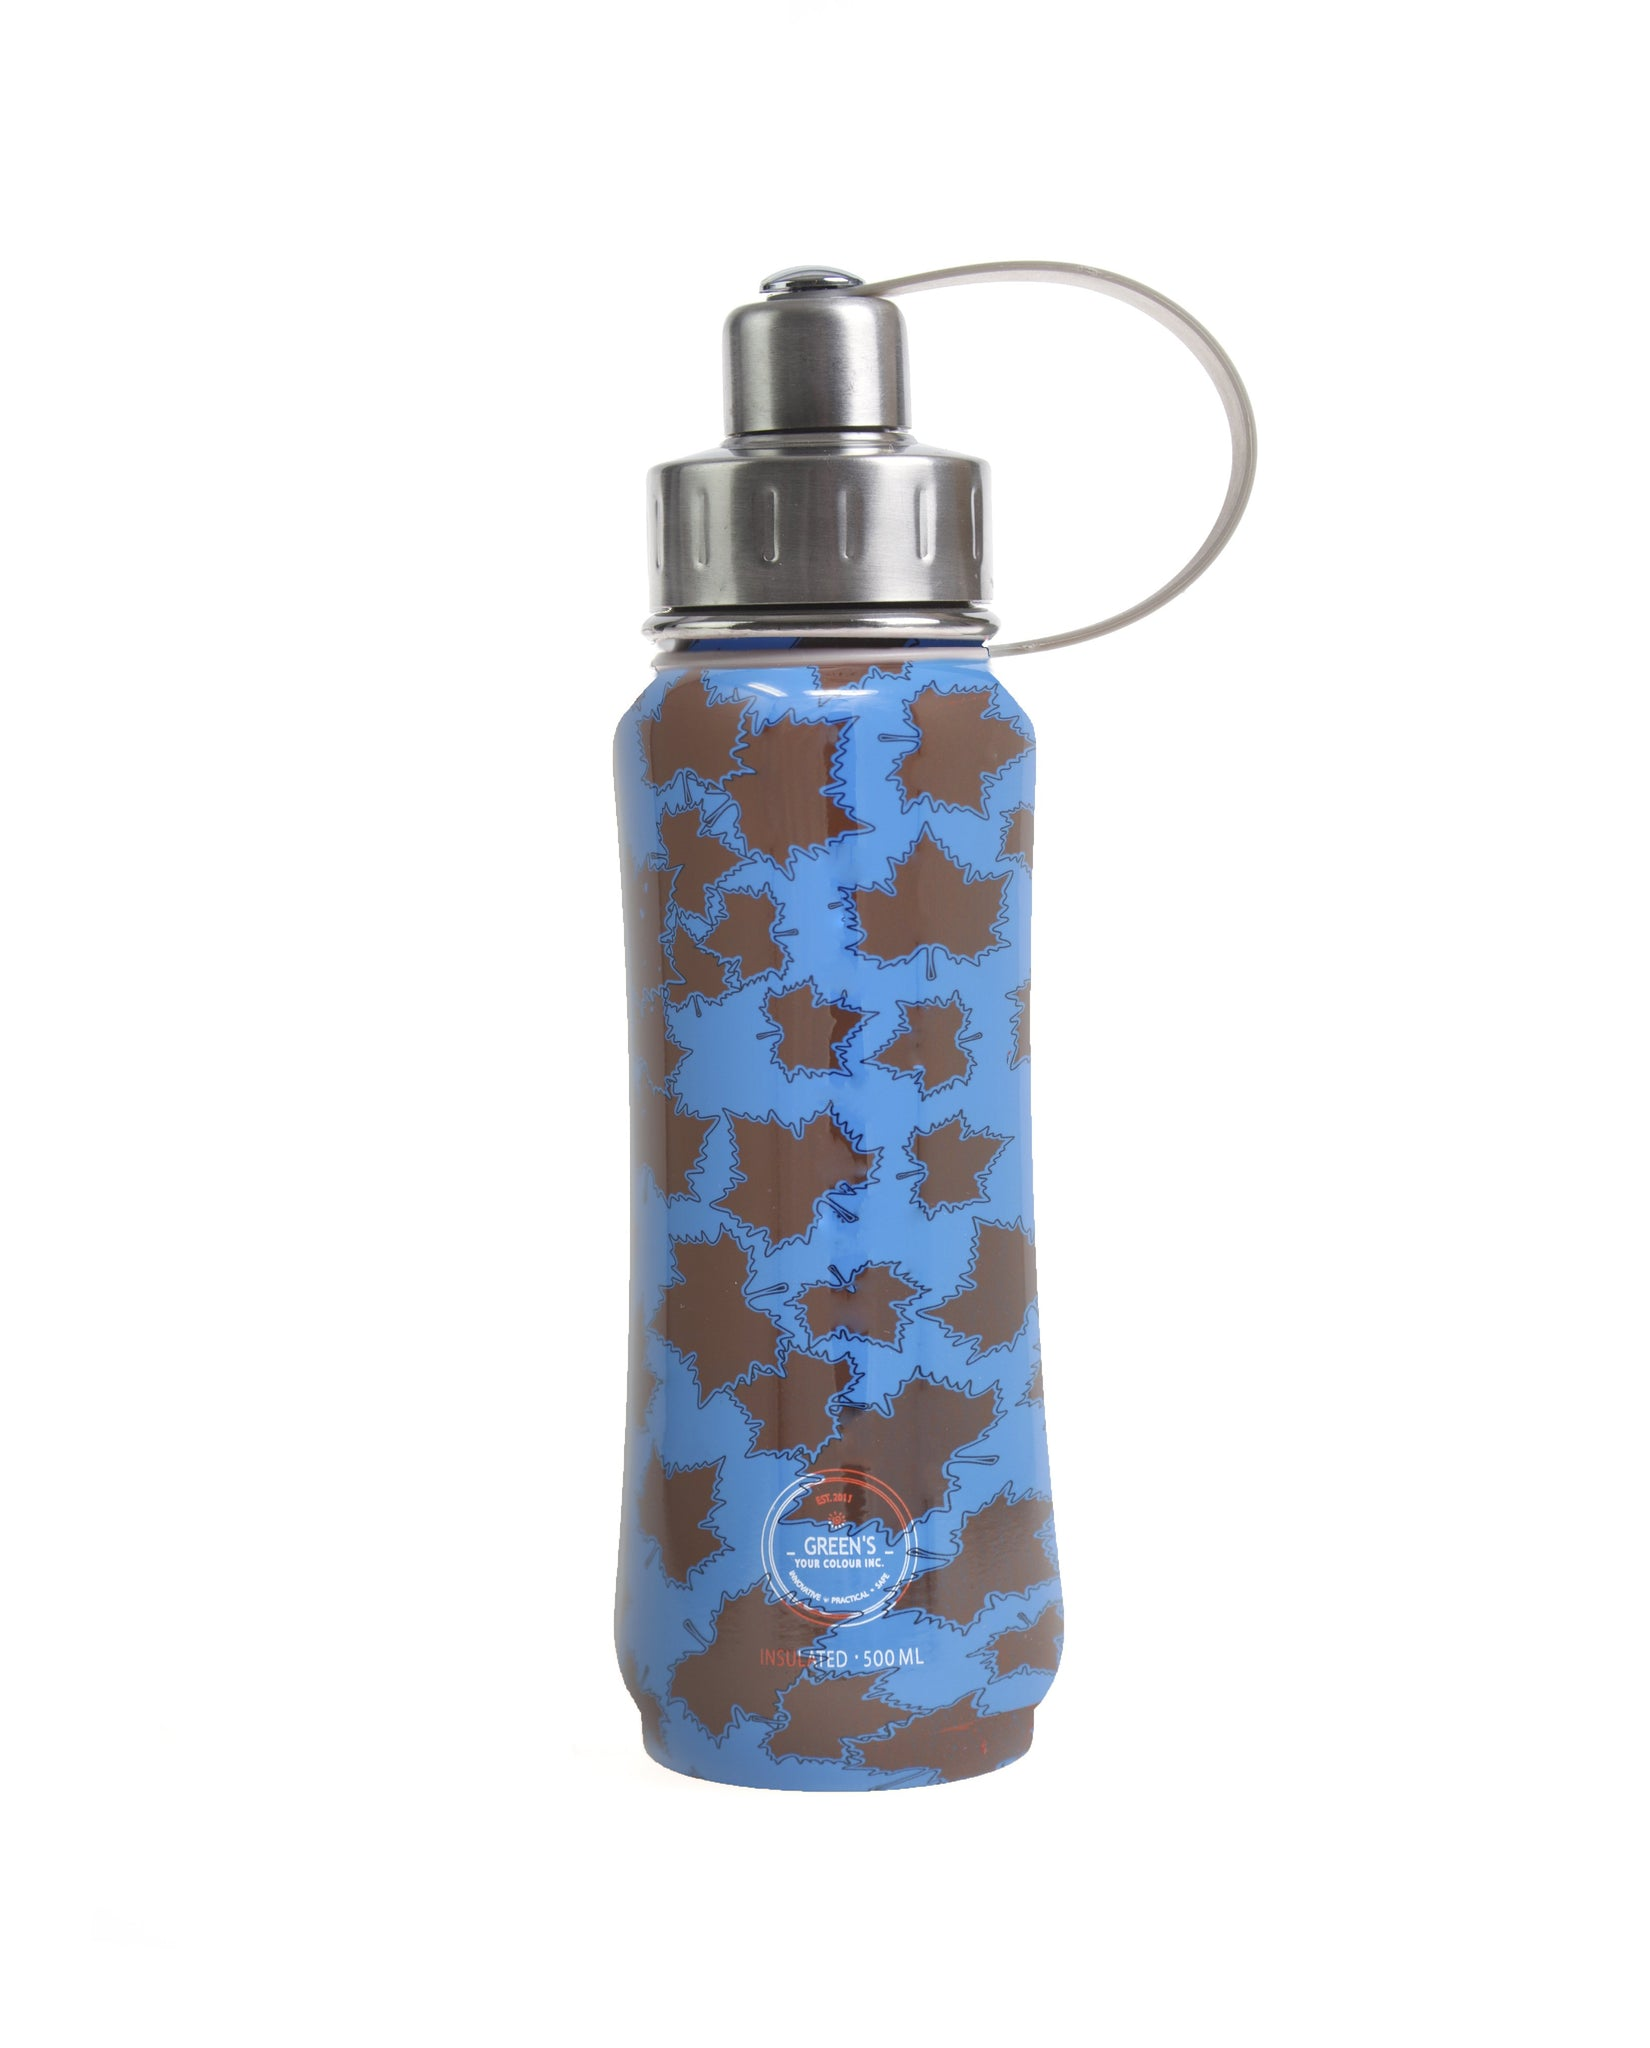 500 ml Blue Eh Canada insulated vacuum stainless steel leak-proof water bottle carrying handle silver lid